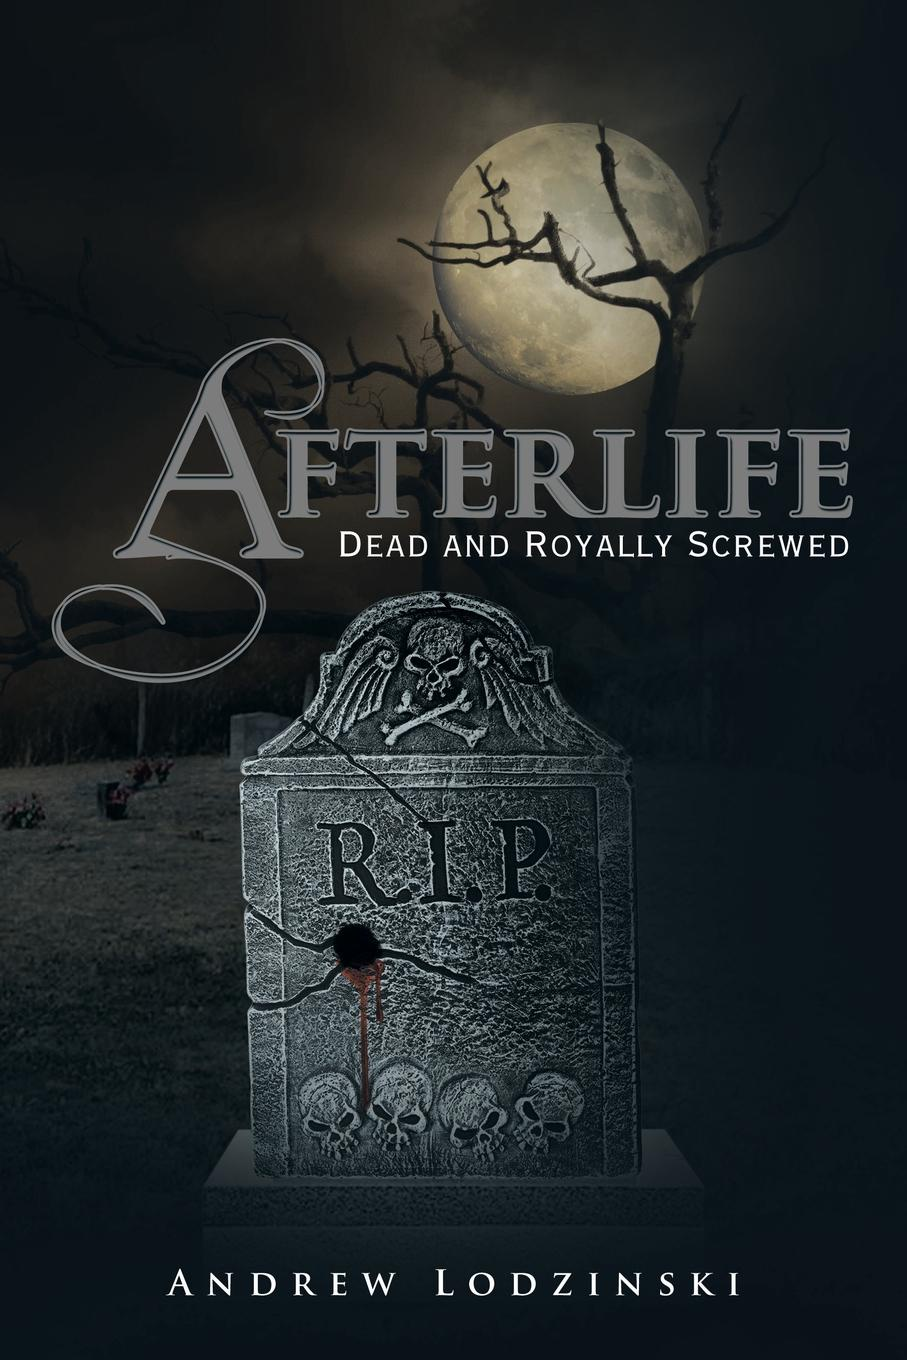 Andrew Lodzinski Afterlife Dead and Royally Screwed. Dead and Royally Screwed lesser dead